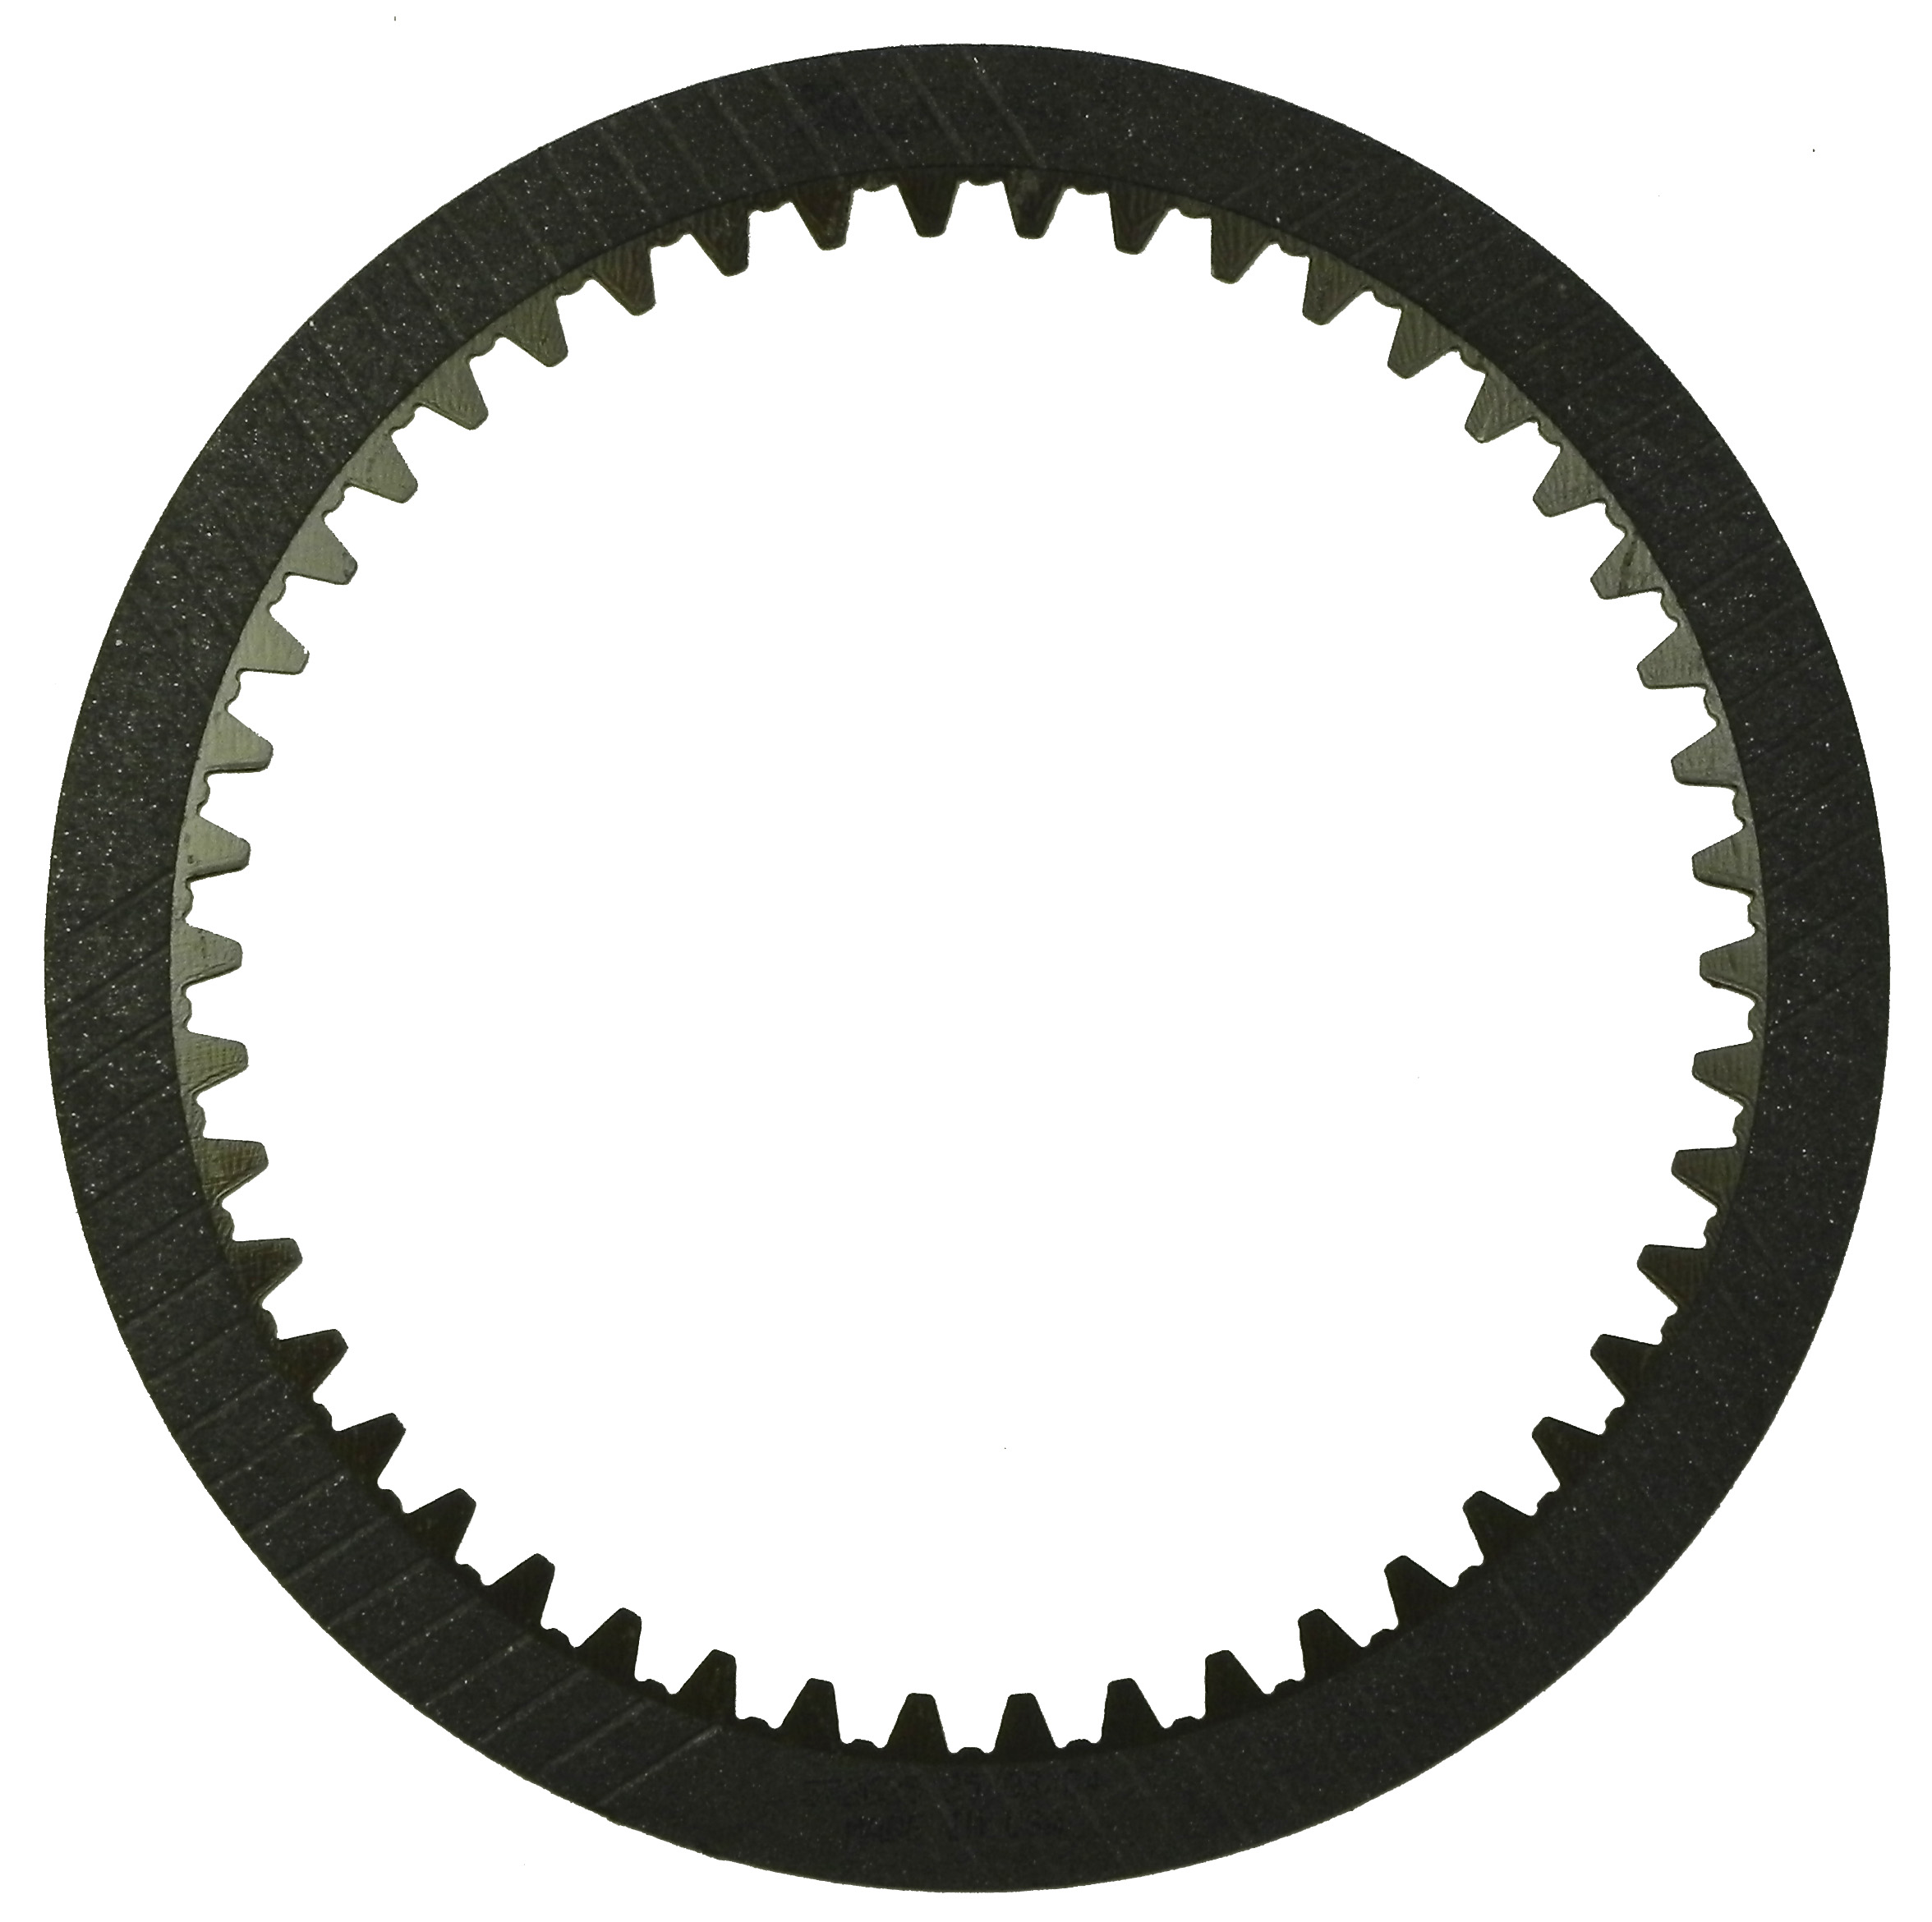 R572625 | 1996-2006 Friction Clutch Plate High Energy B3 Clutch Double Sided, ID Spline High Energy